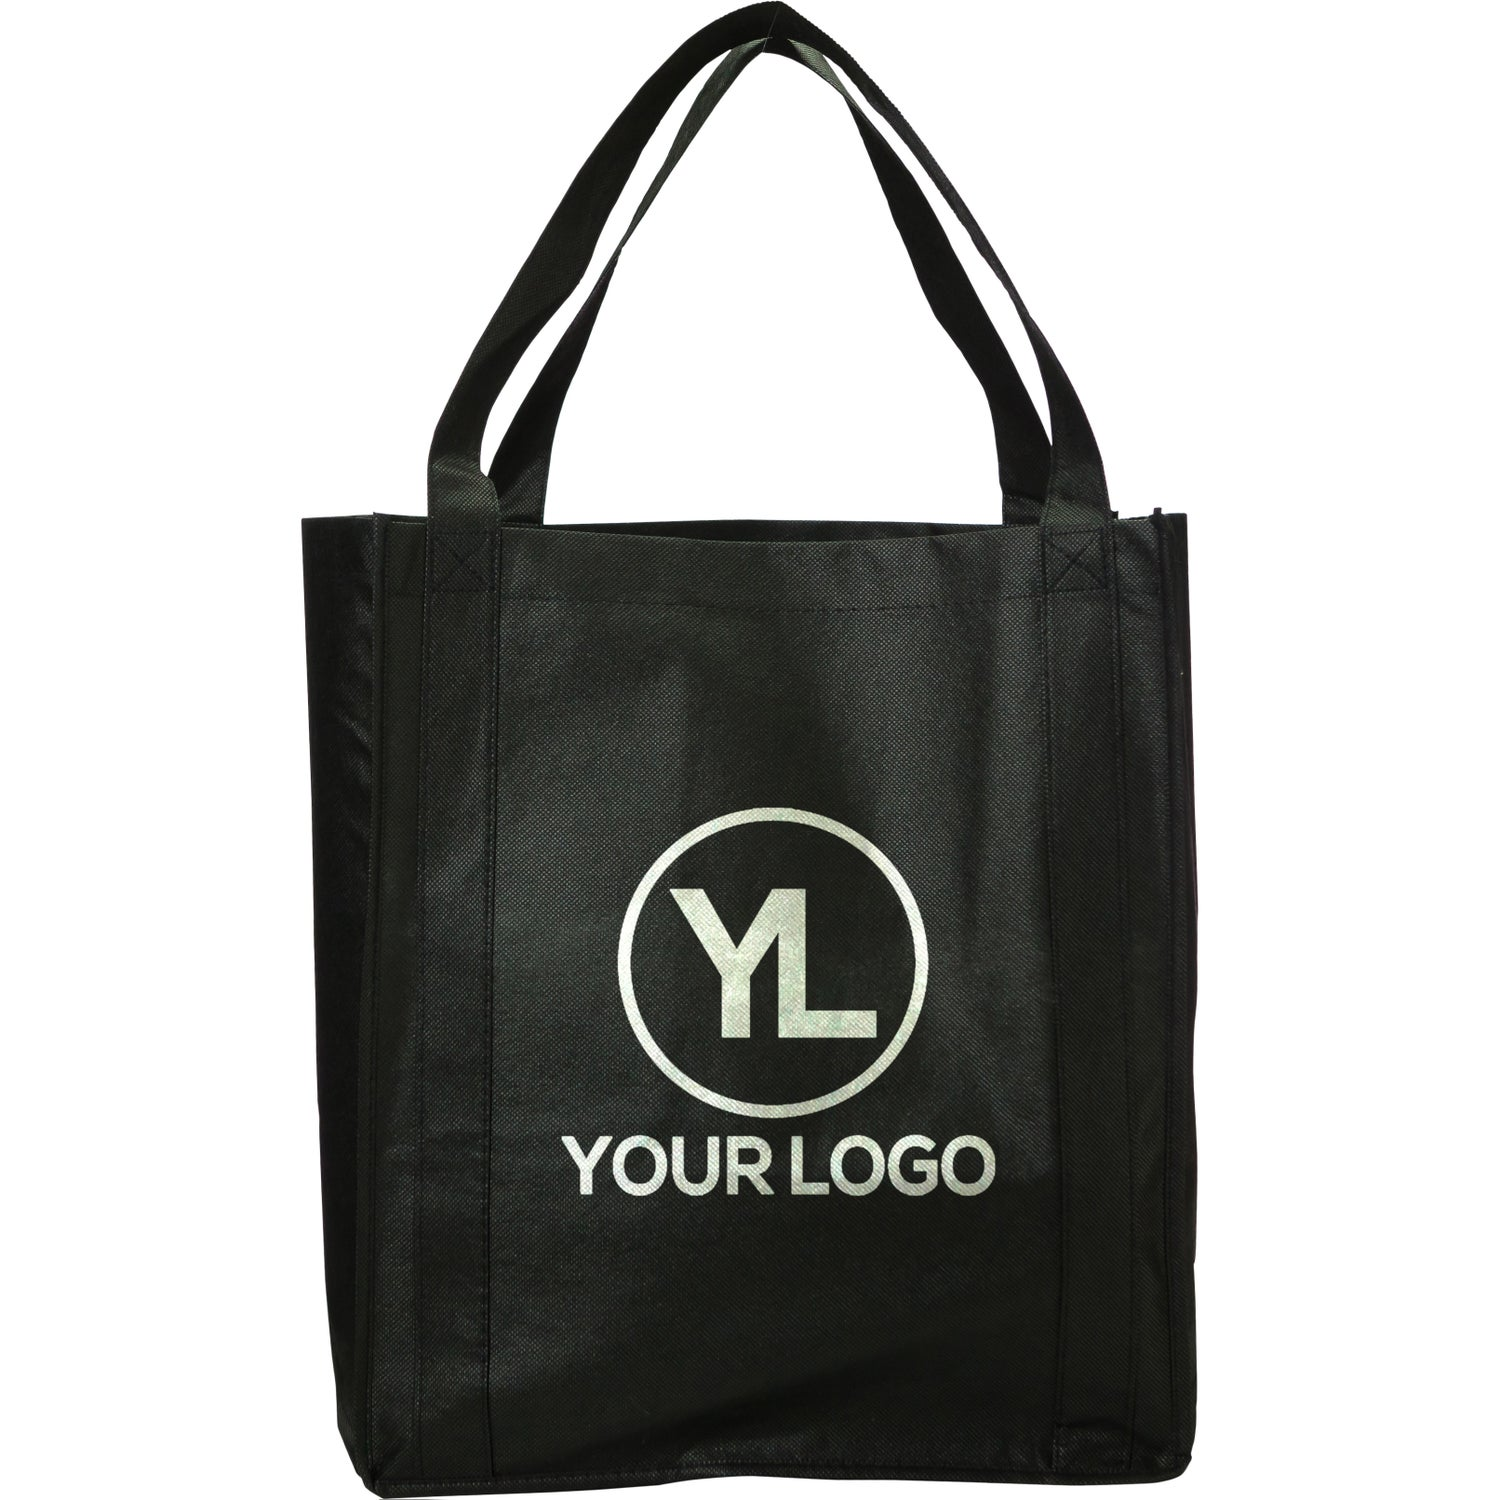 98dfcd0c91f Promotional Jumbo Nonwoven Grocery Totes with Custom Logo for  1.85 Ea.